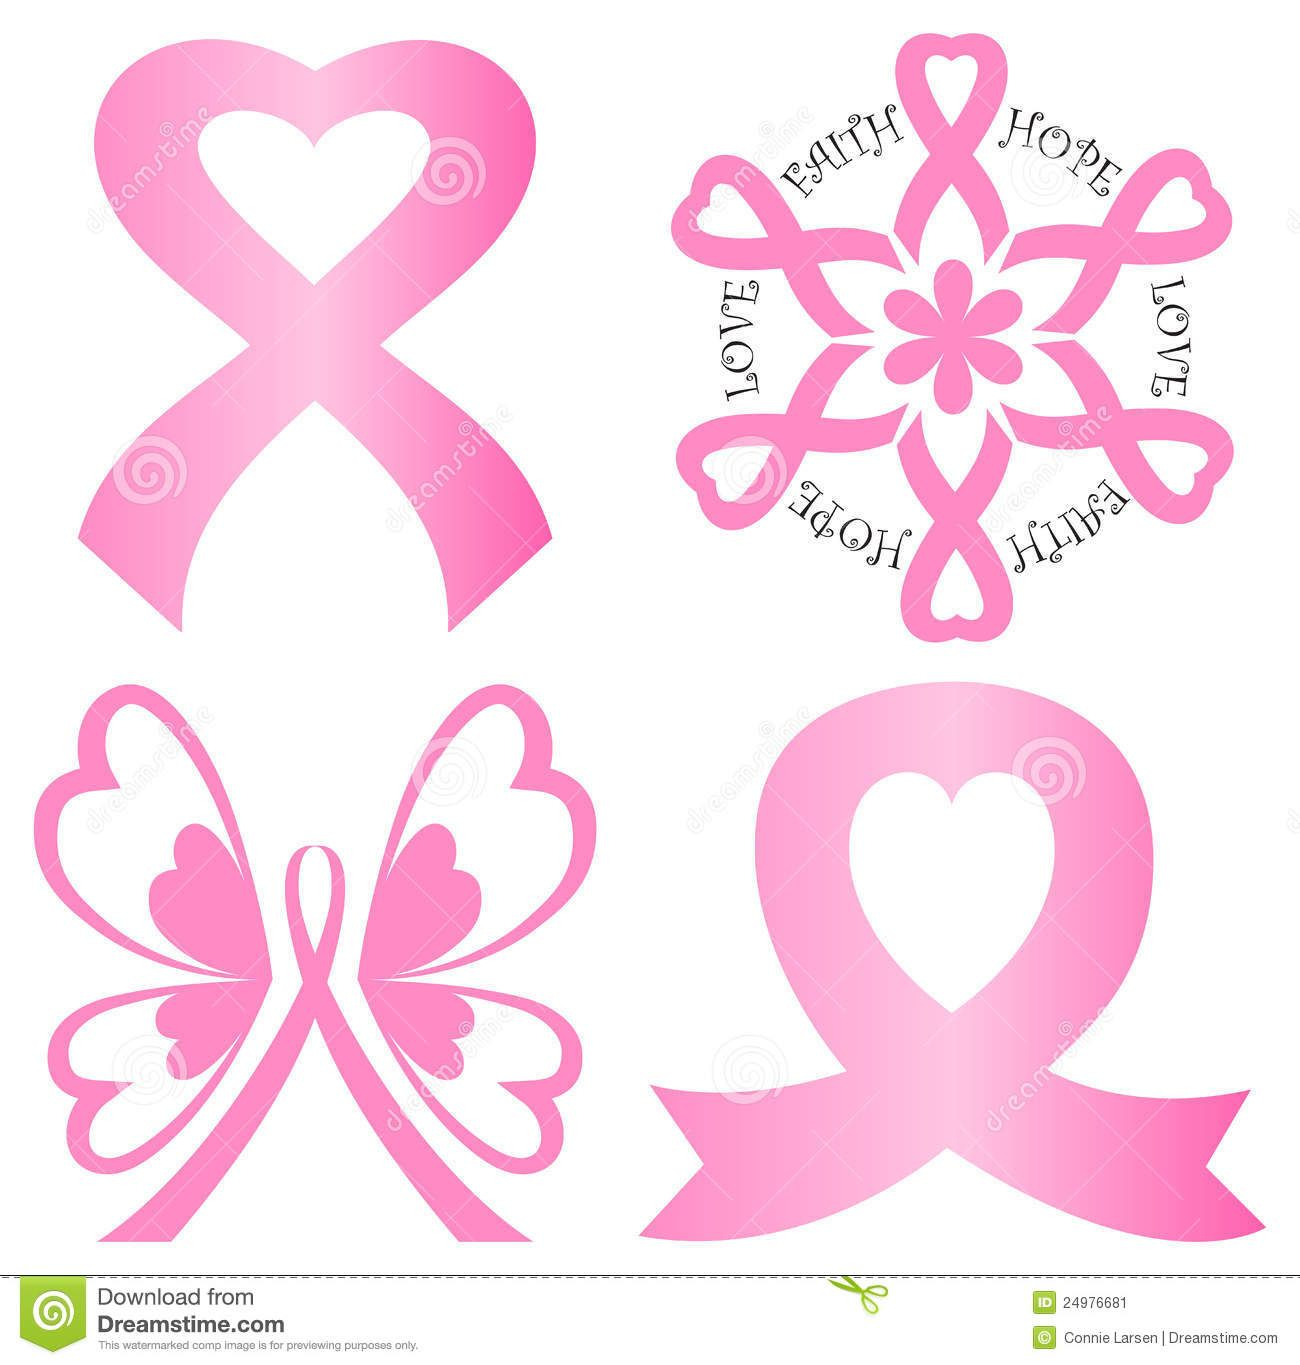 cancer stock illustrations vectors clipart 17943 stock